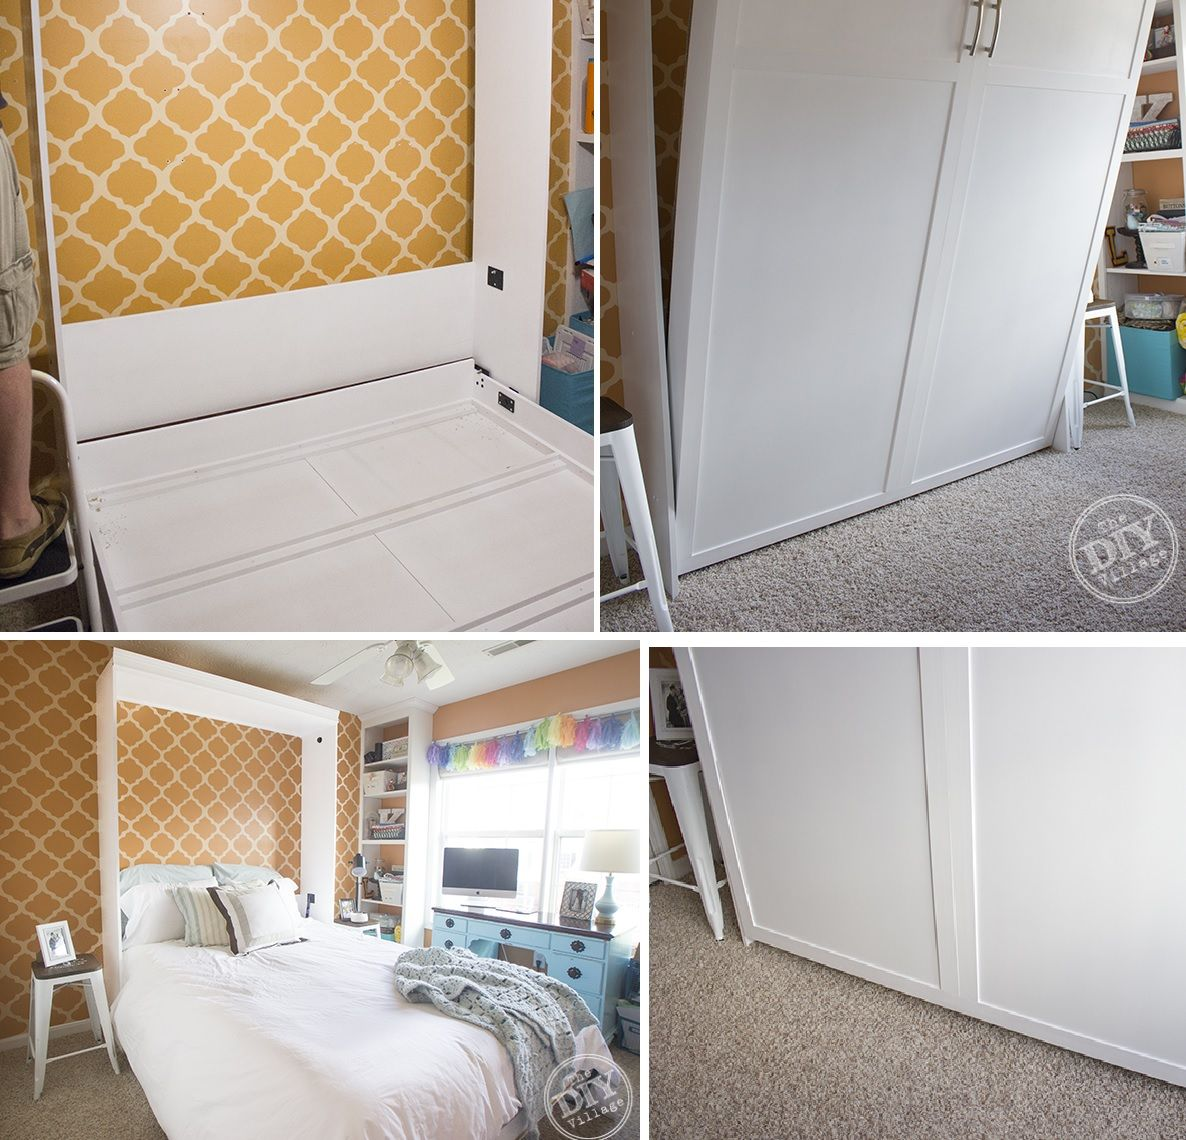 how to reinvent a spare room with a diy murphy bed - How To Reinvent A Spare Room With A DIY Murphy Bed